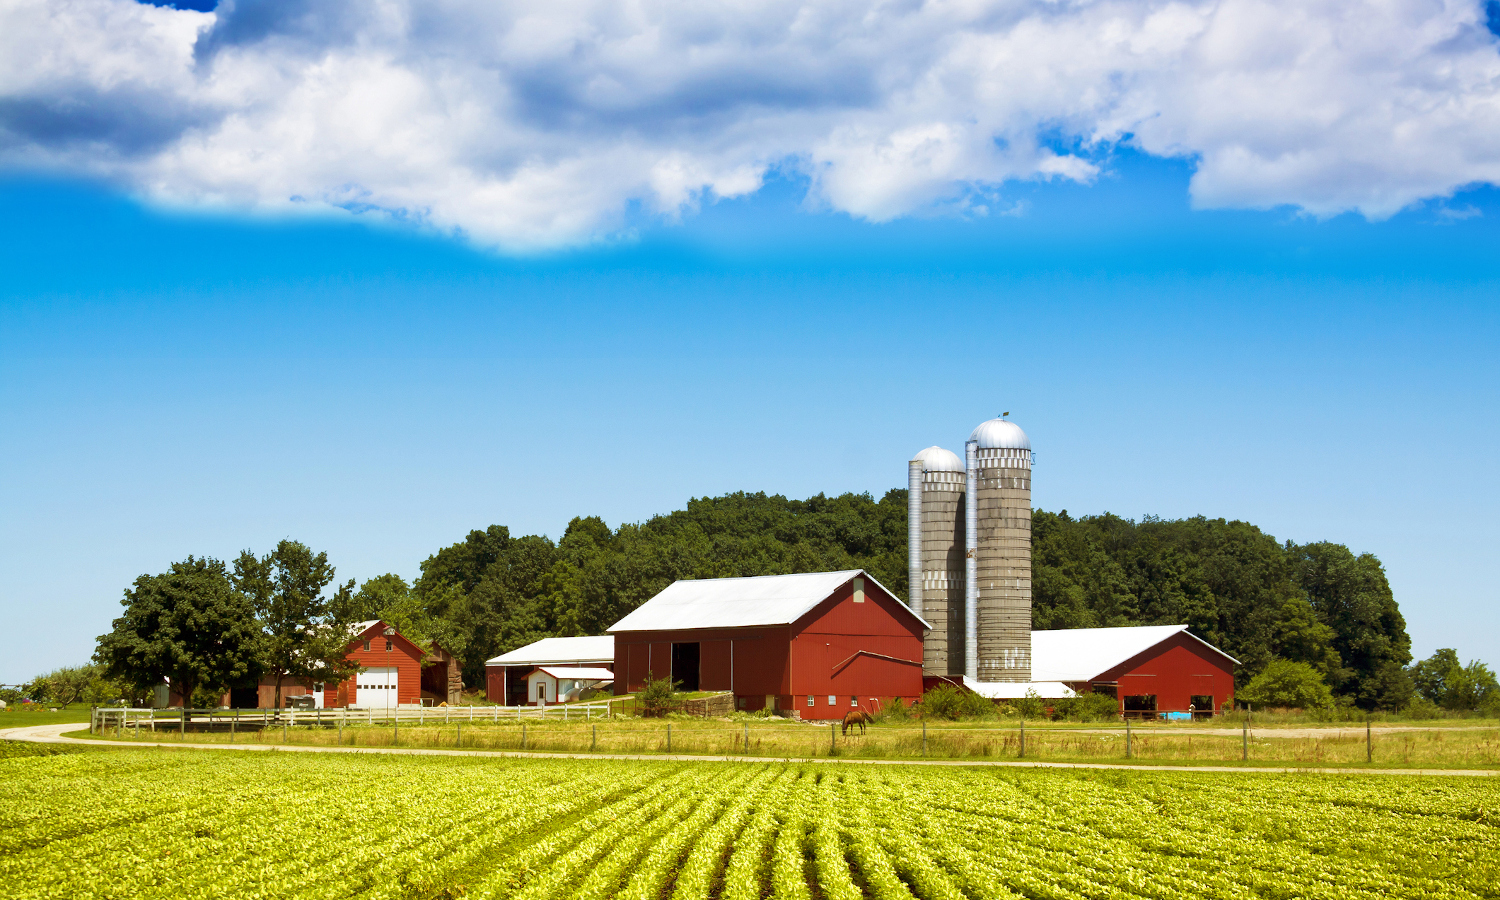 Farmers face challenges from trade wars, climate change, and COVID-19 but need more than federal payments to be sustainable long term.